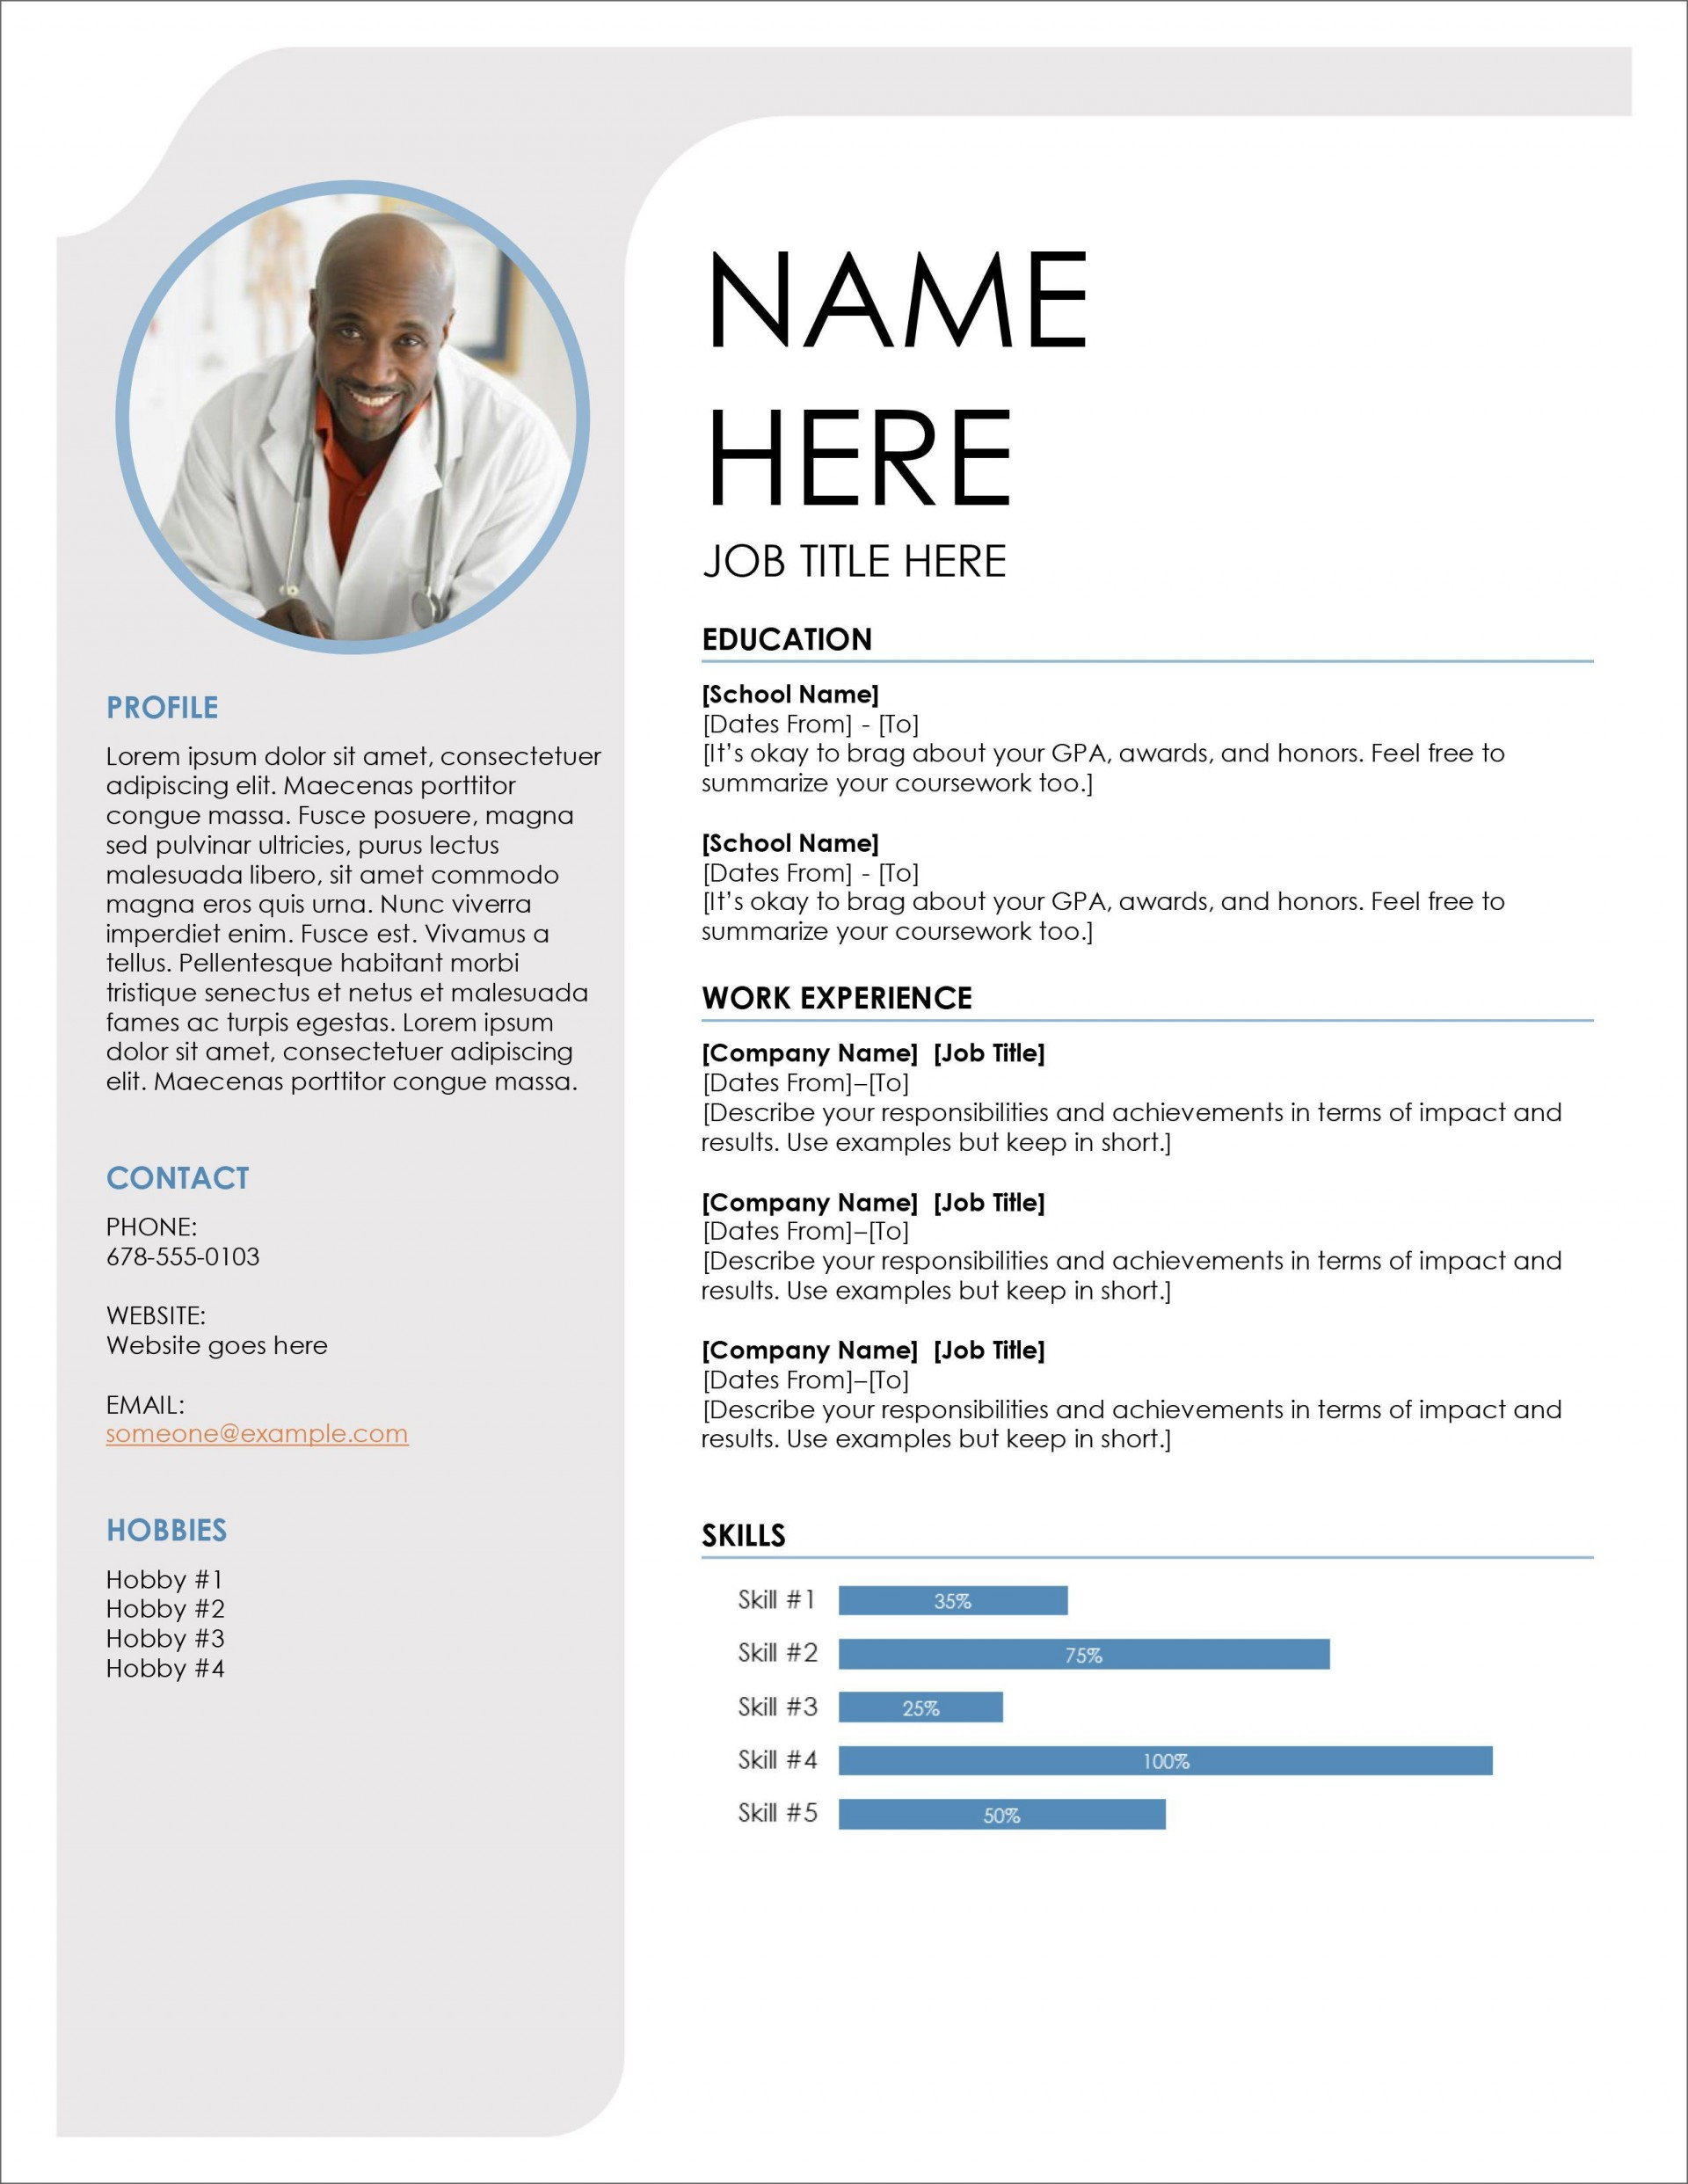 005 Incredible Download Free Resume Template Word 2018 Inspiration 1920